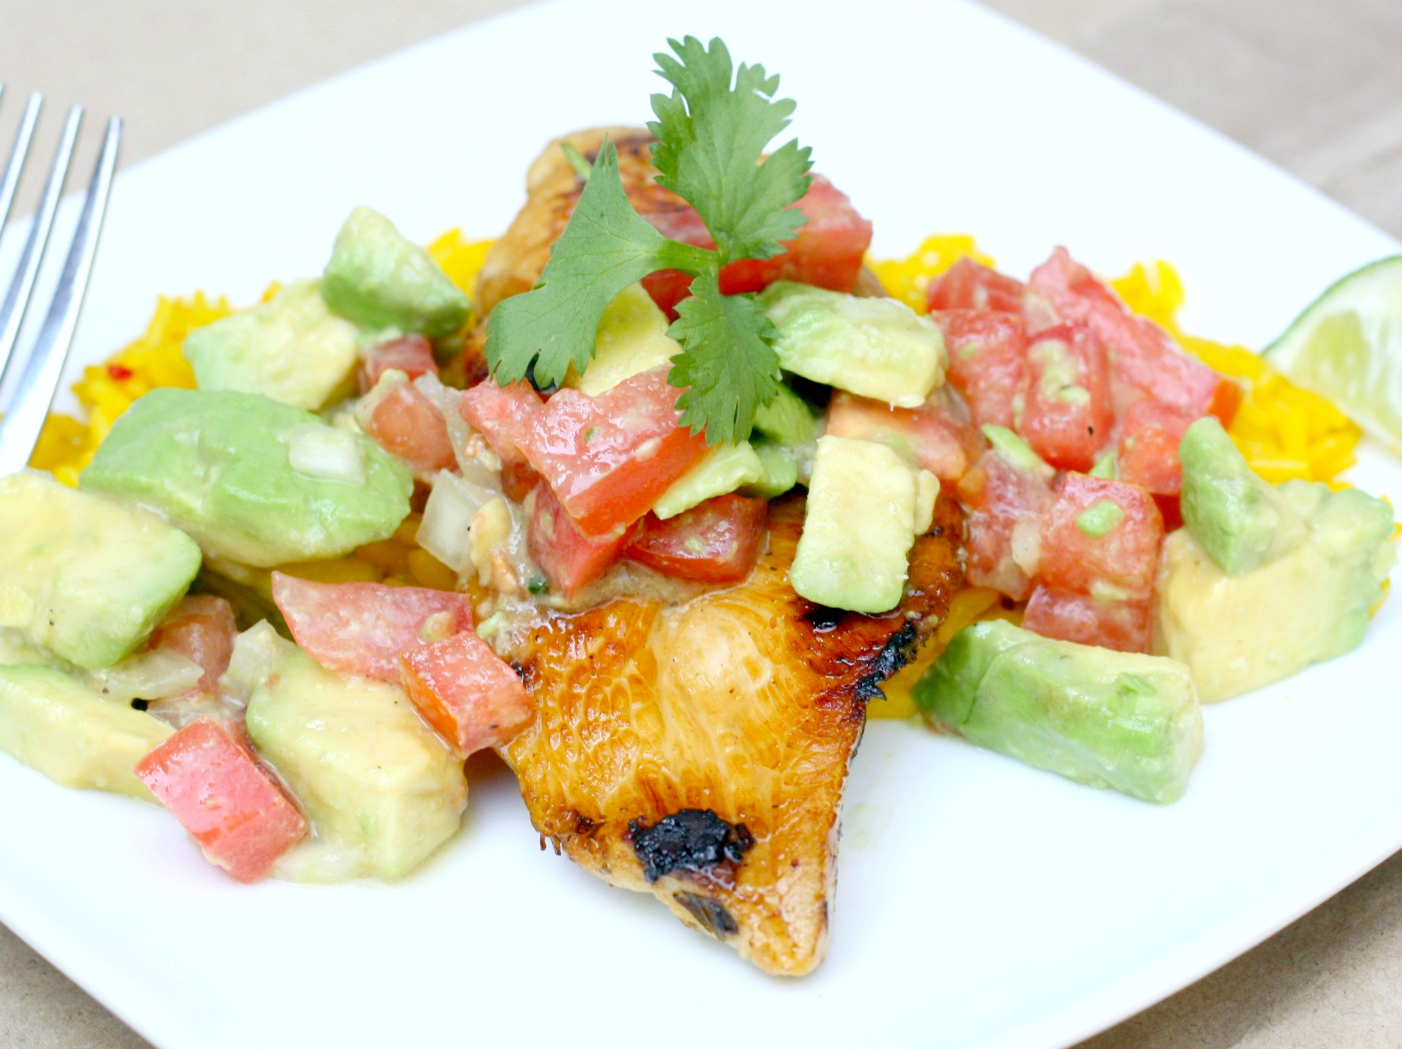 Bitchin' Kitchen: Cilantro-Lime Chicken with Avocado Salsa